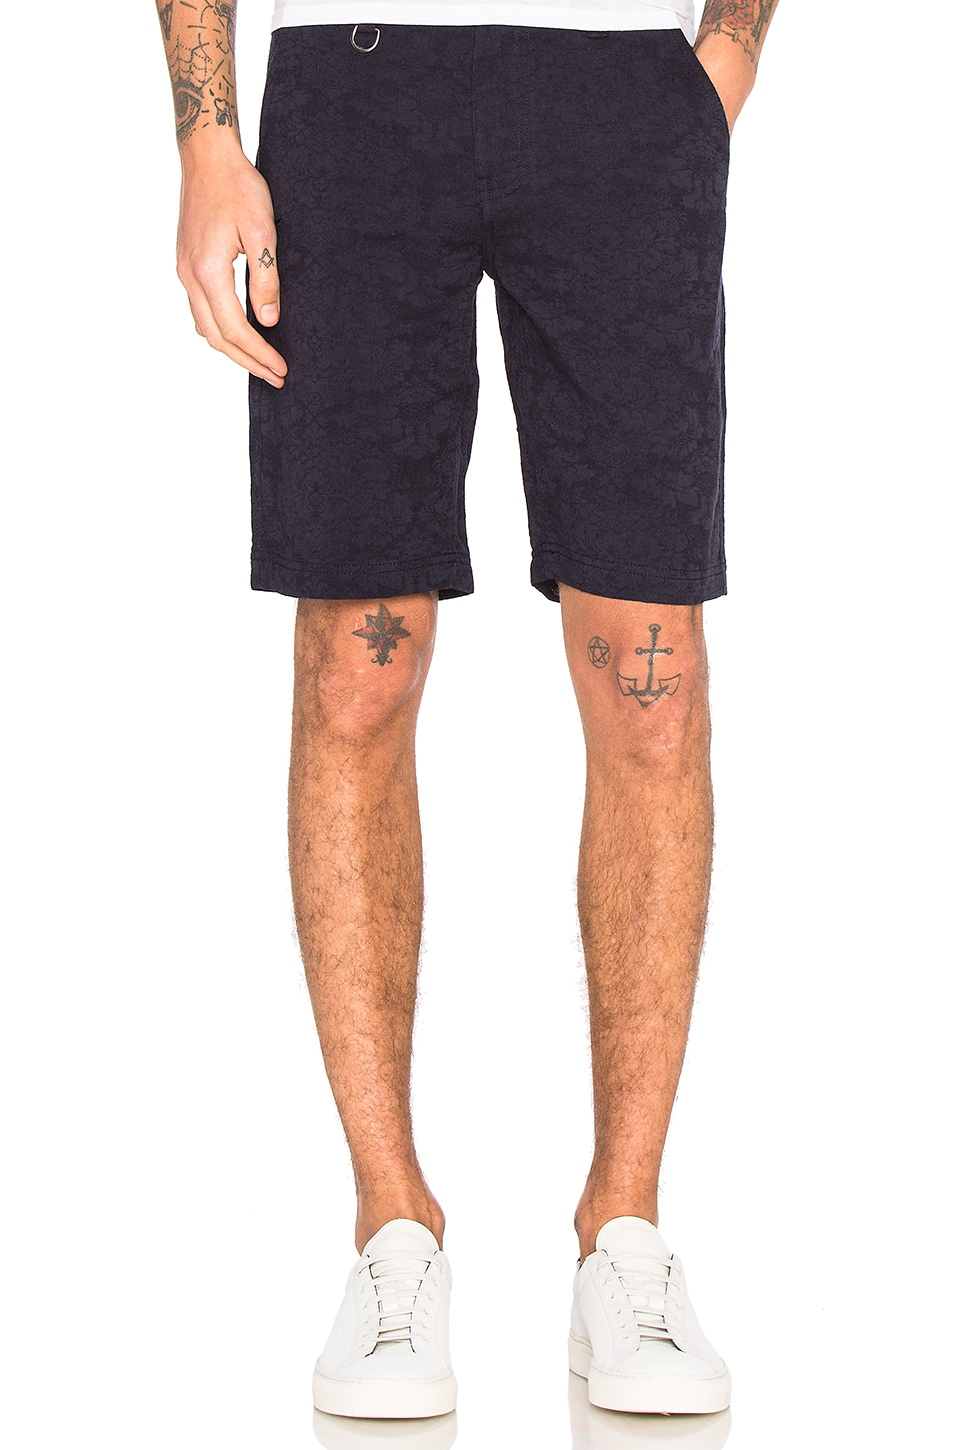 Braedon Shorts by Publish